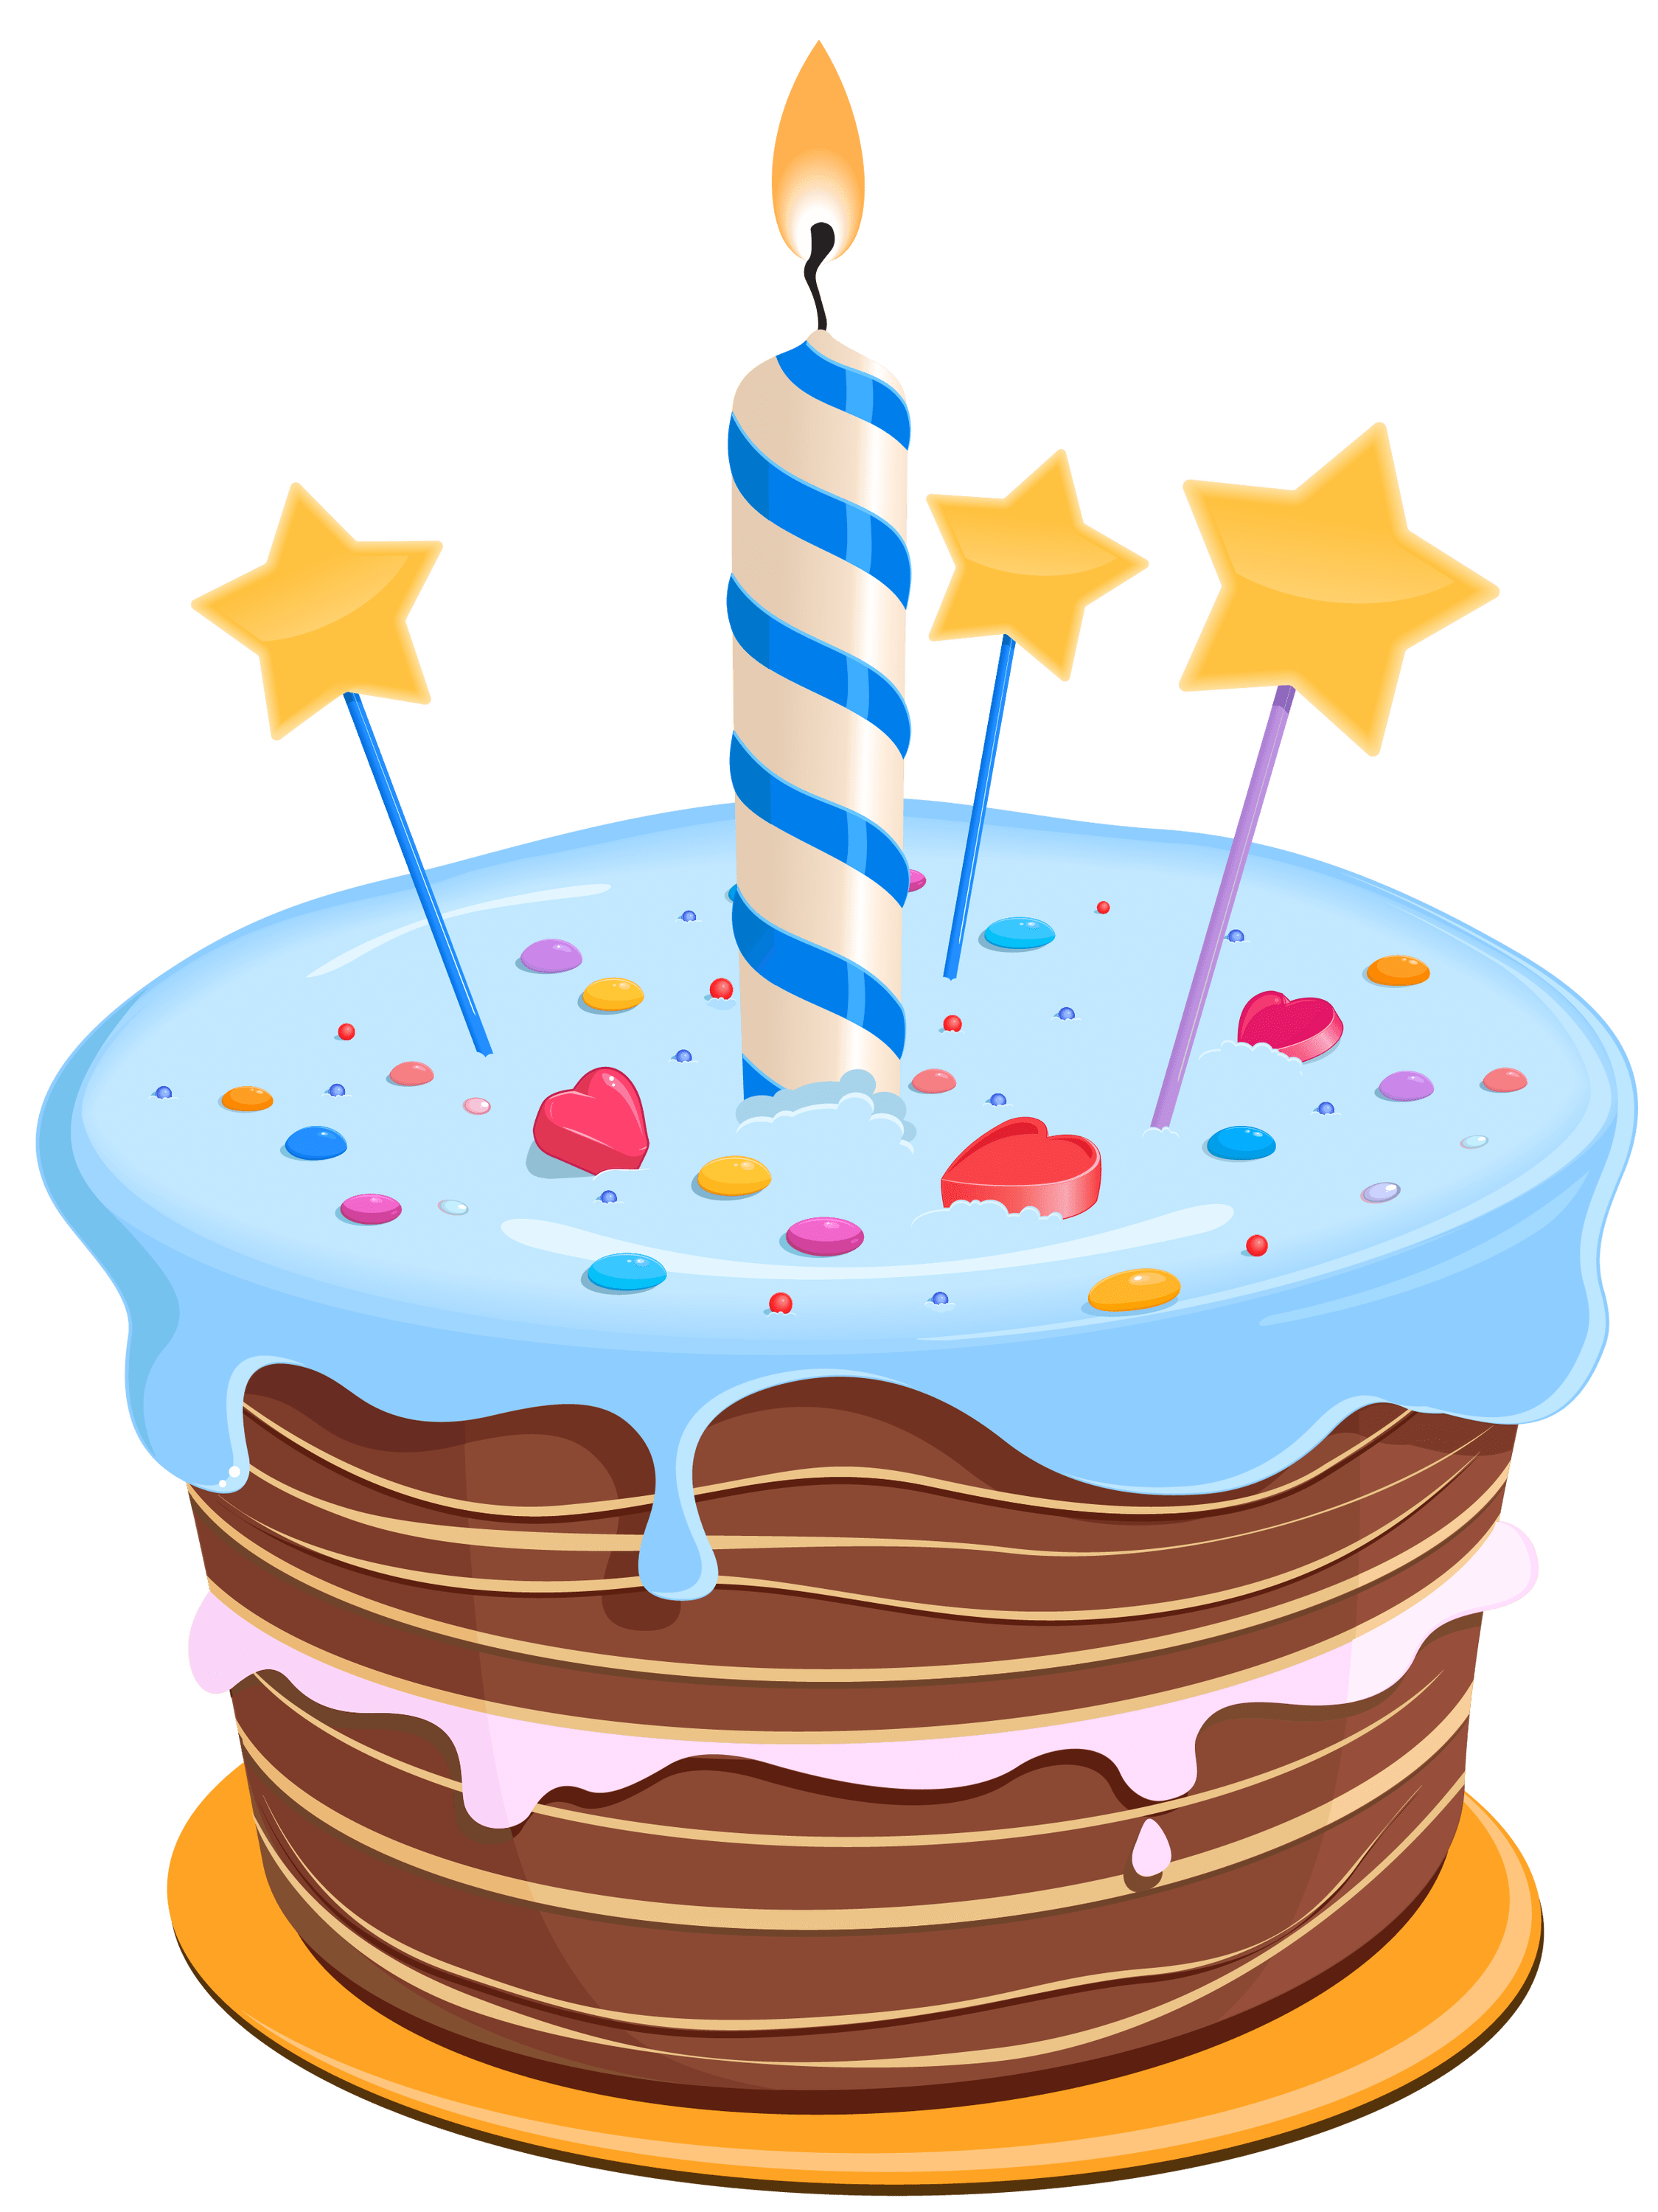 image black and white download Cake clipart transparent background. Birthday drawing blue png.